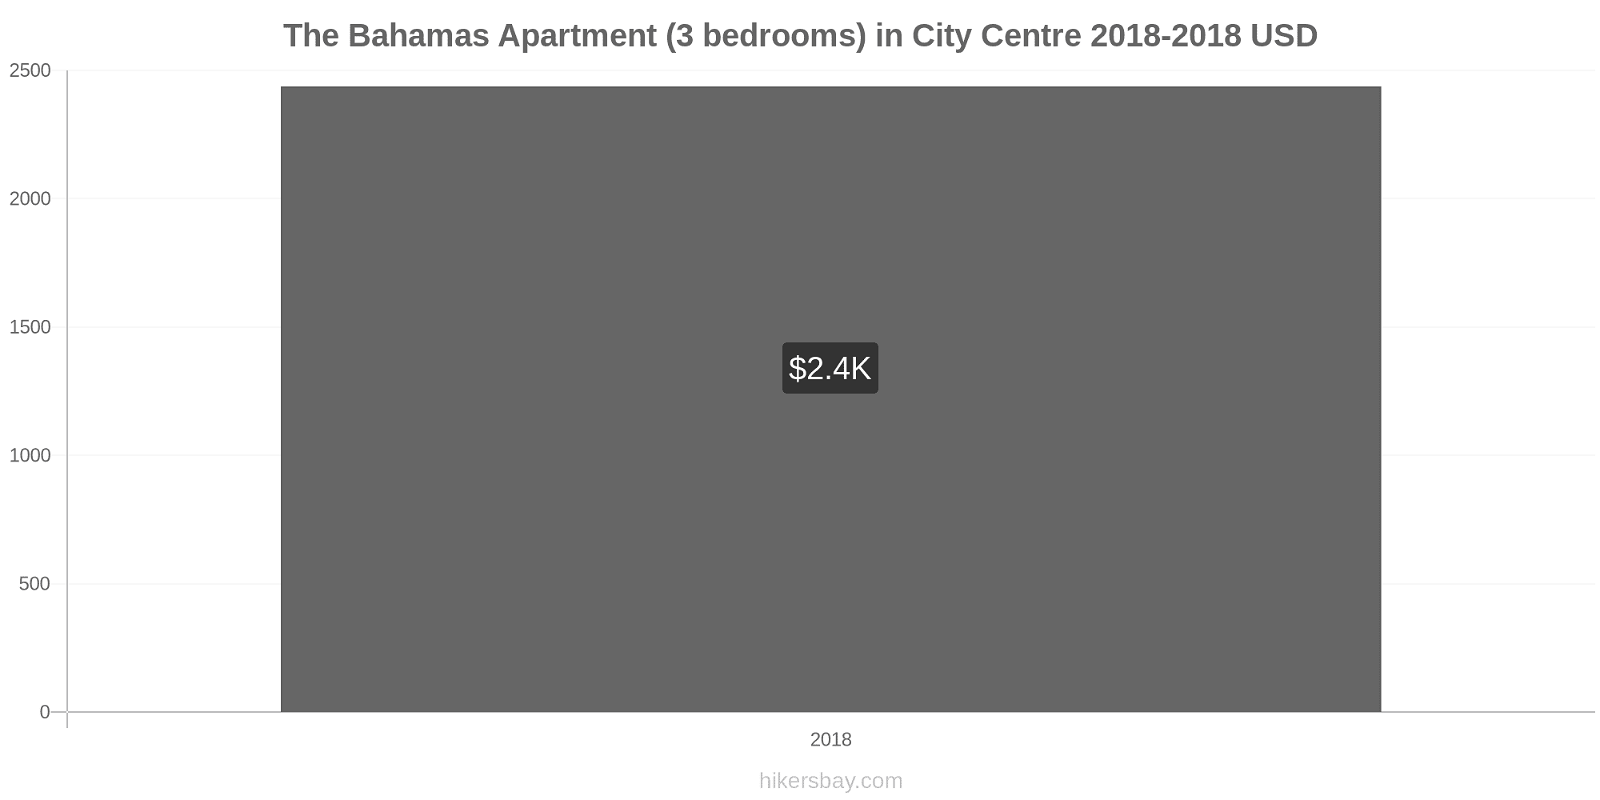 The Bahamas price changes Apartment (3 bedrooms) in City Centre hikersbay.com